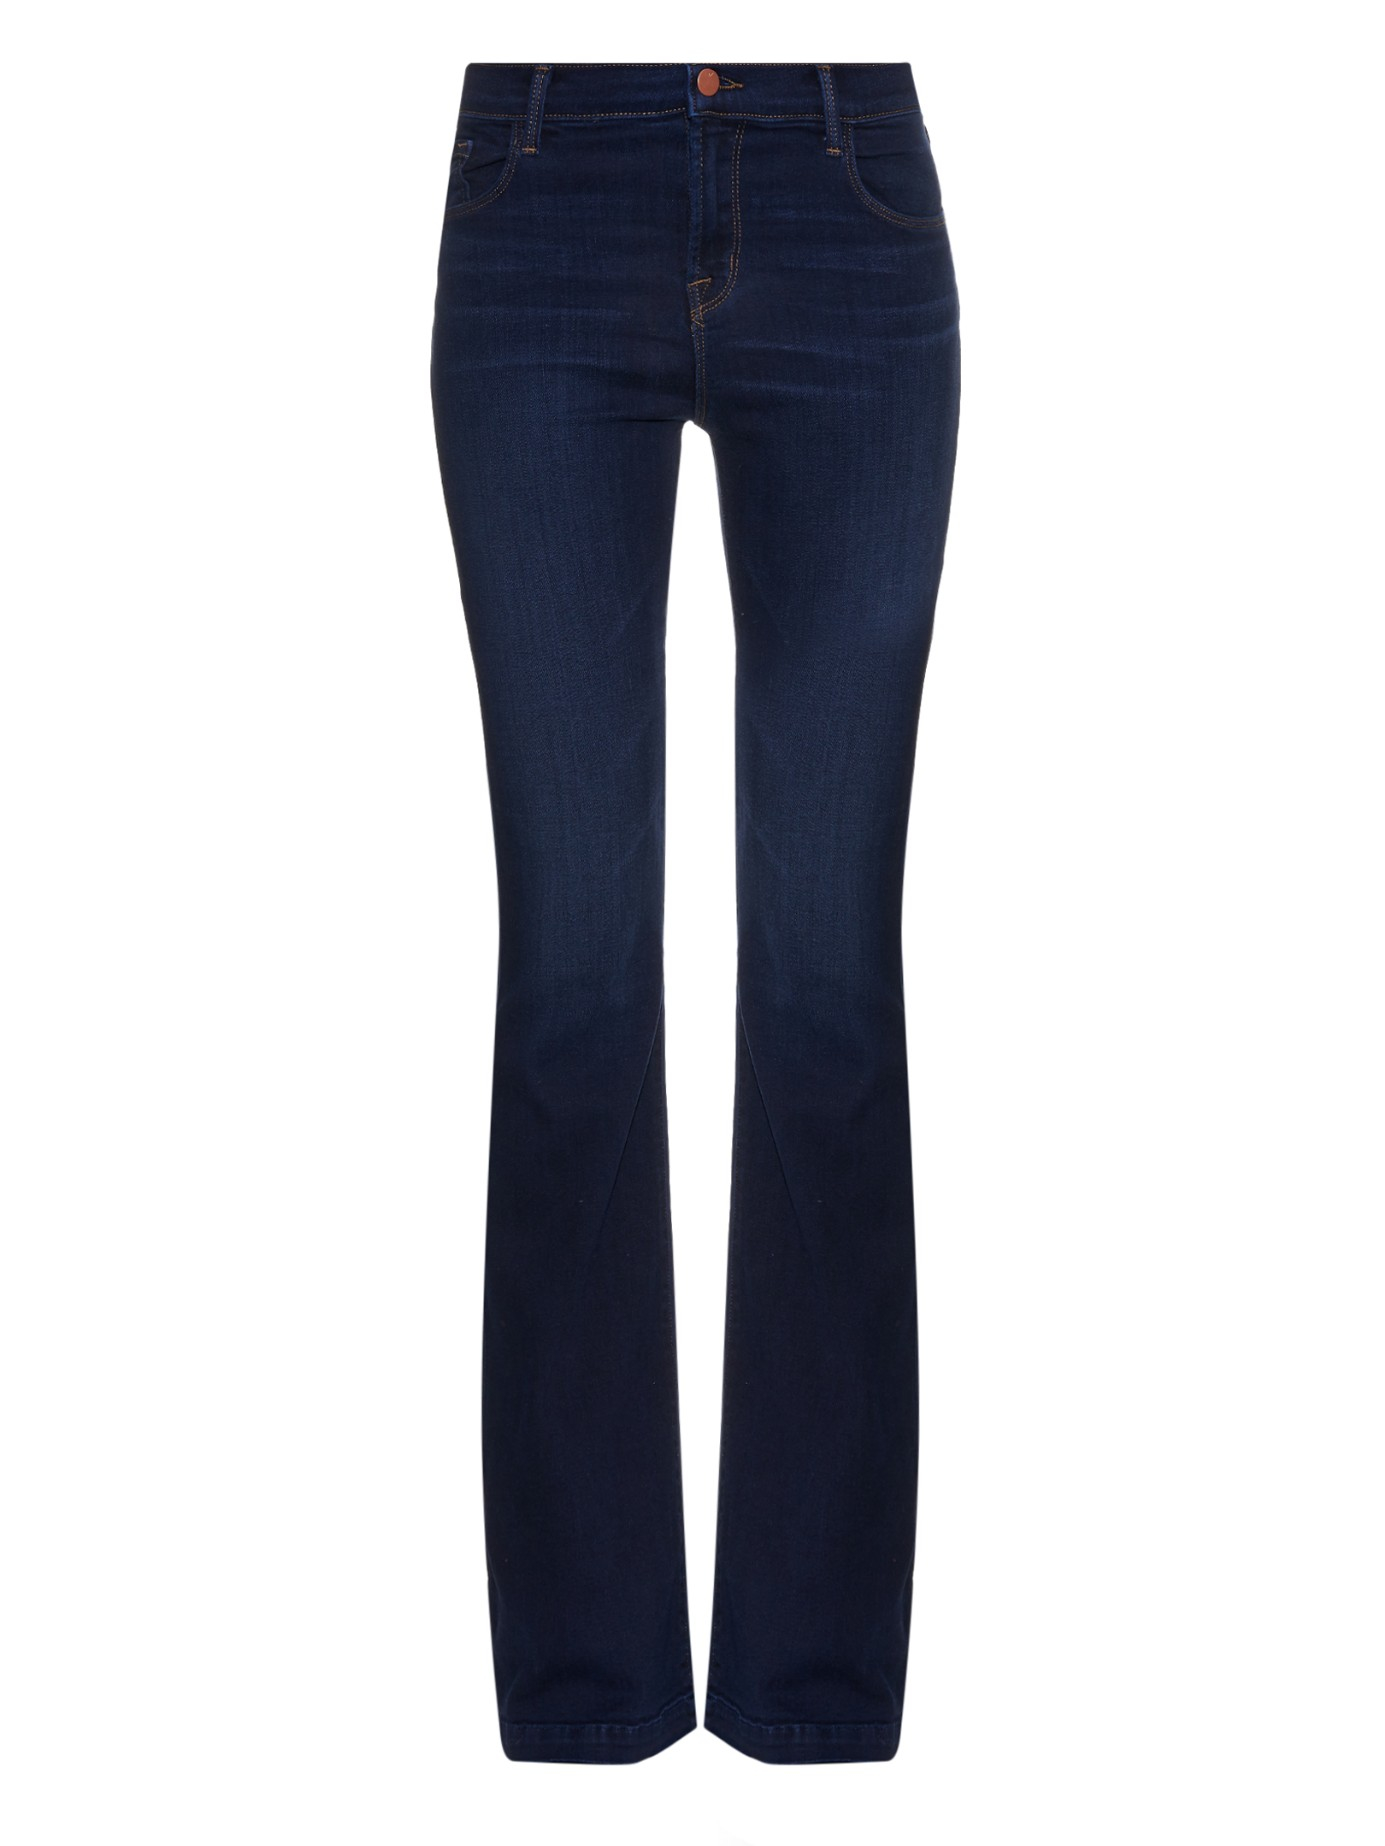 J brand Maria High-rise Flared Jeans in Blue | Lyst